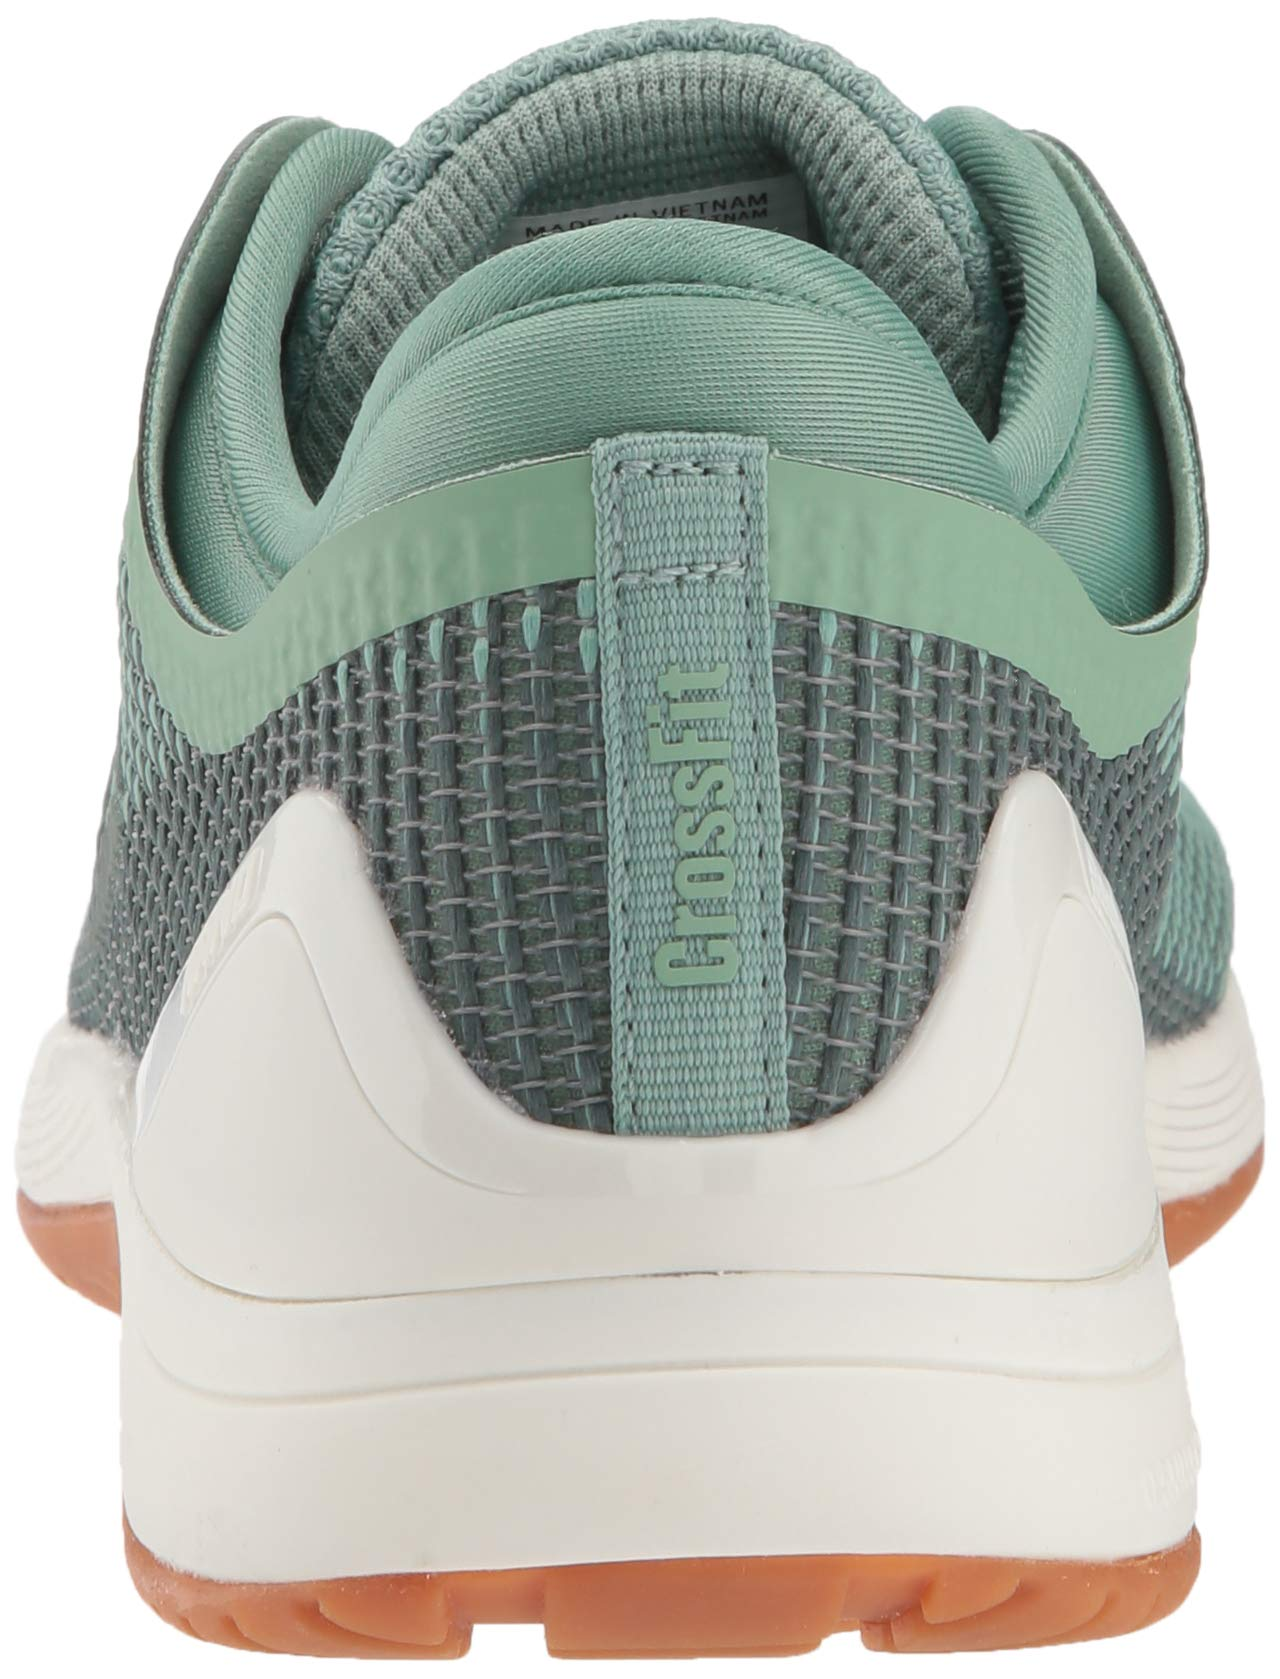 Reebok Women's CROSSFIT Nano 8.0 Flexweave Cross Trainer, industrial green/chalk grey, 5 M US by Reebok (Image #2)